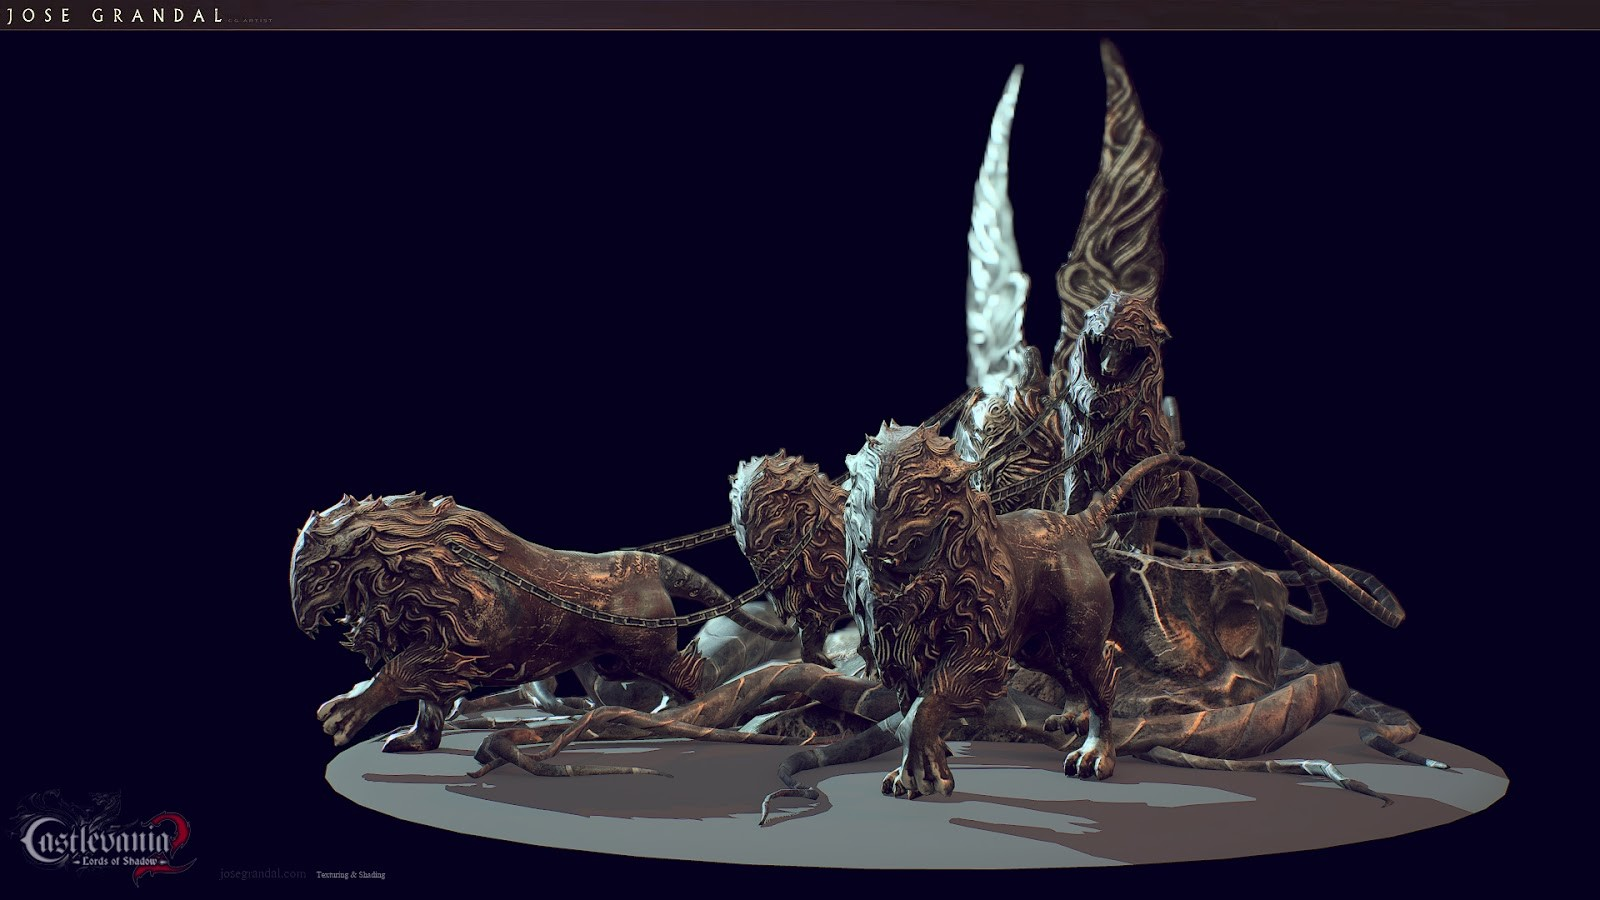 Lions monument. Lords of shadow 2